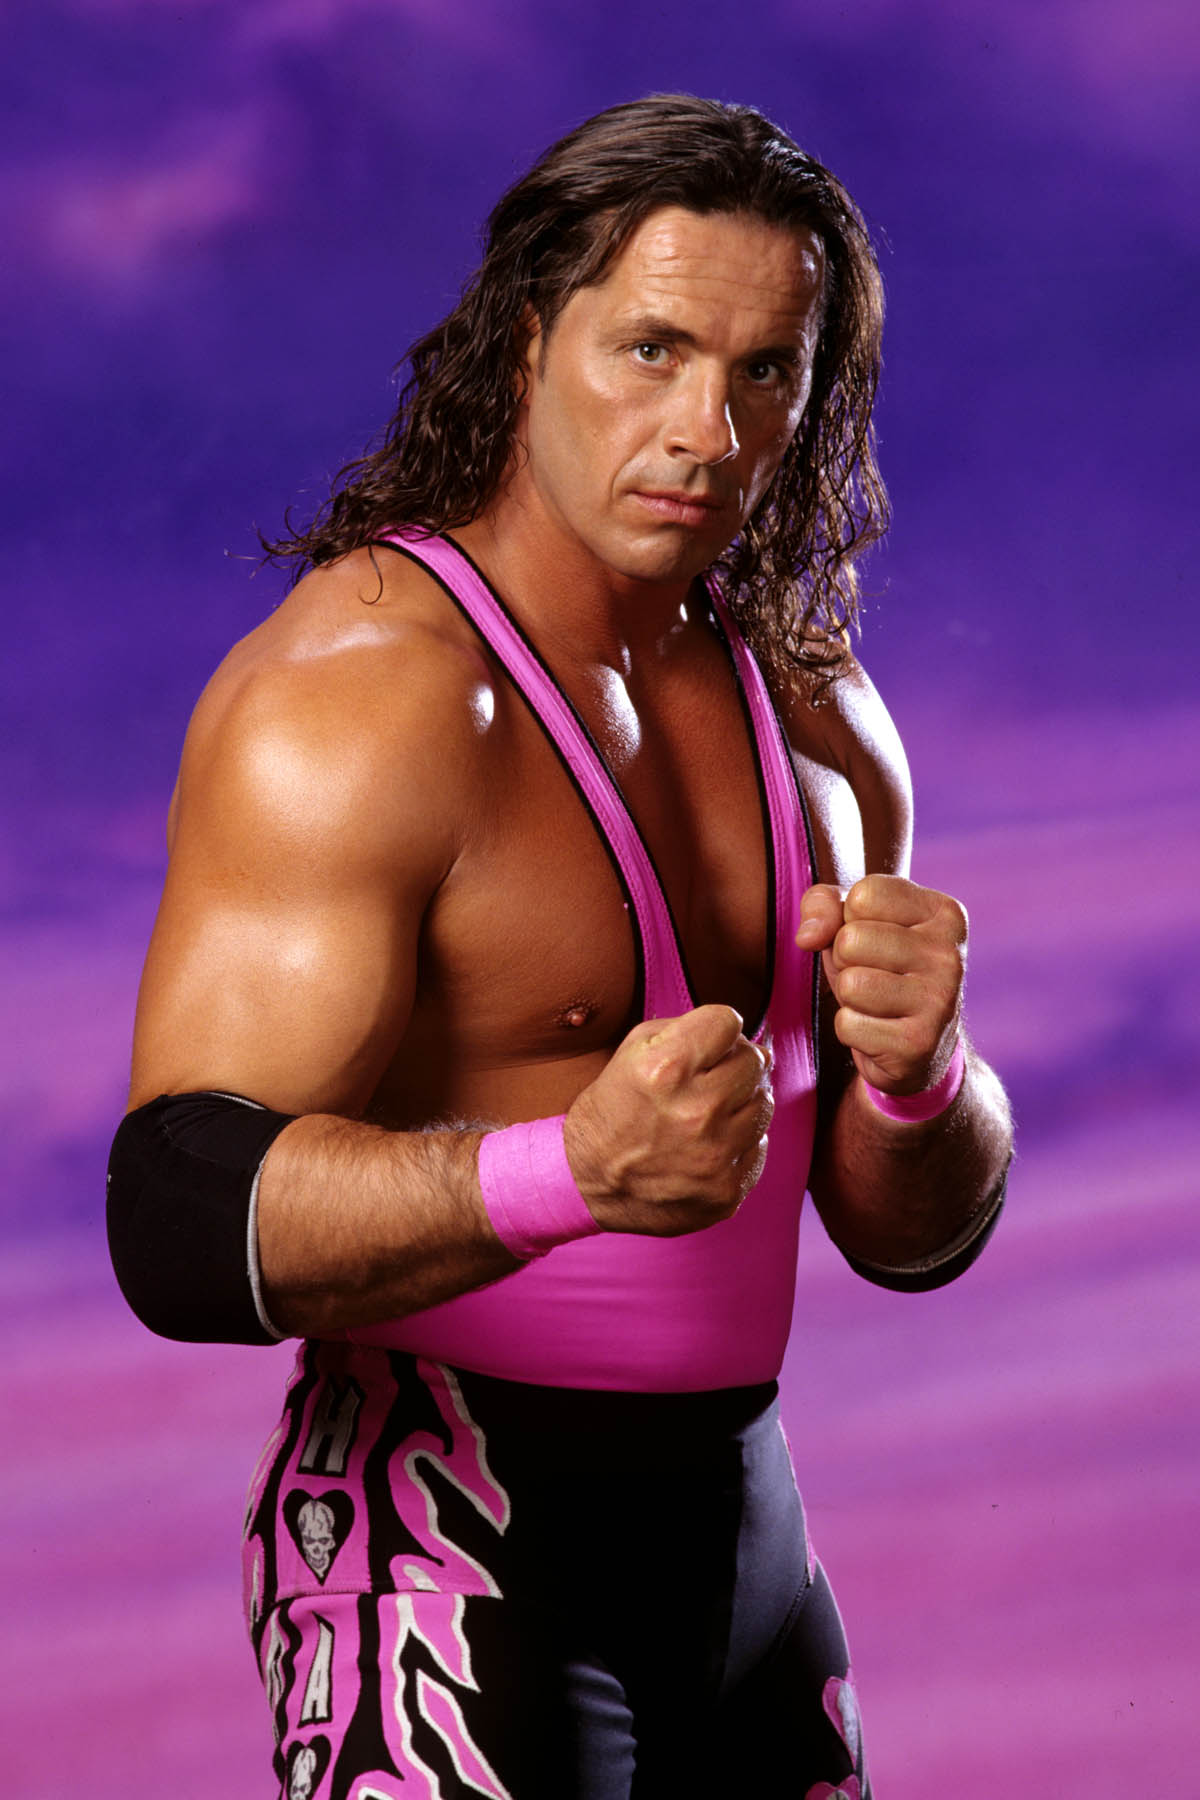 Bret Hart announces he has prostate cancer   Other Sports   Sporting News